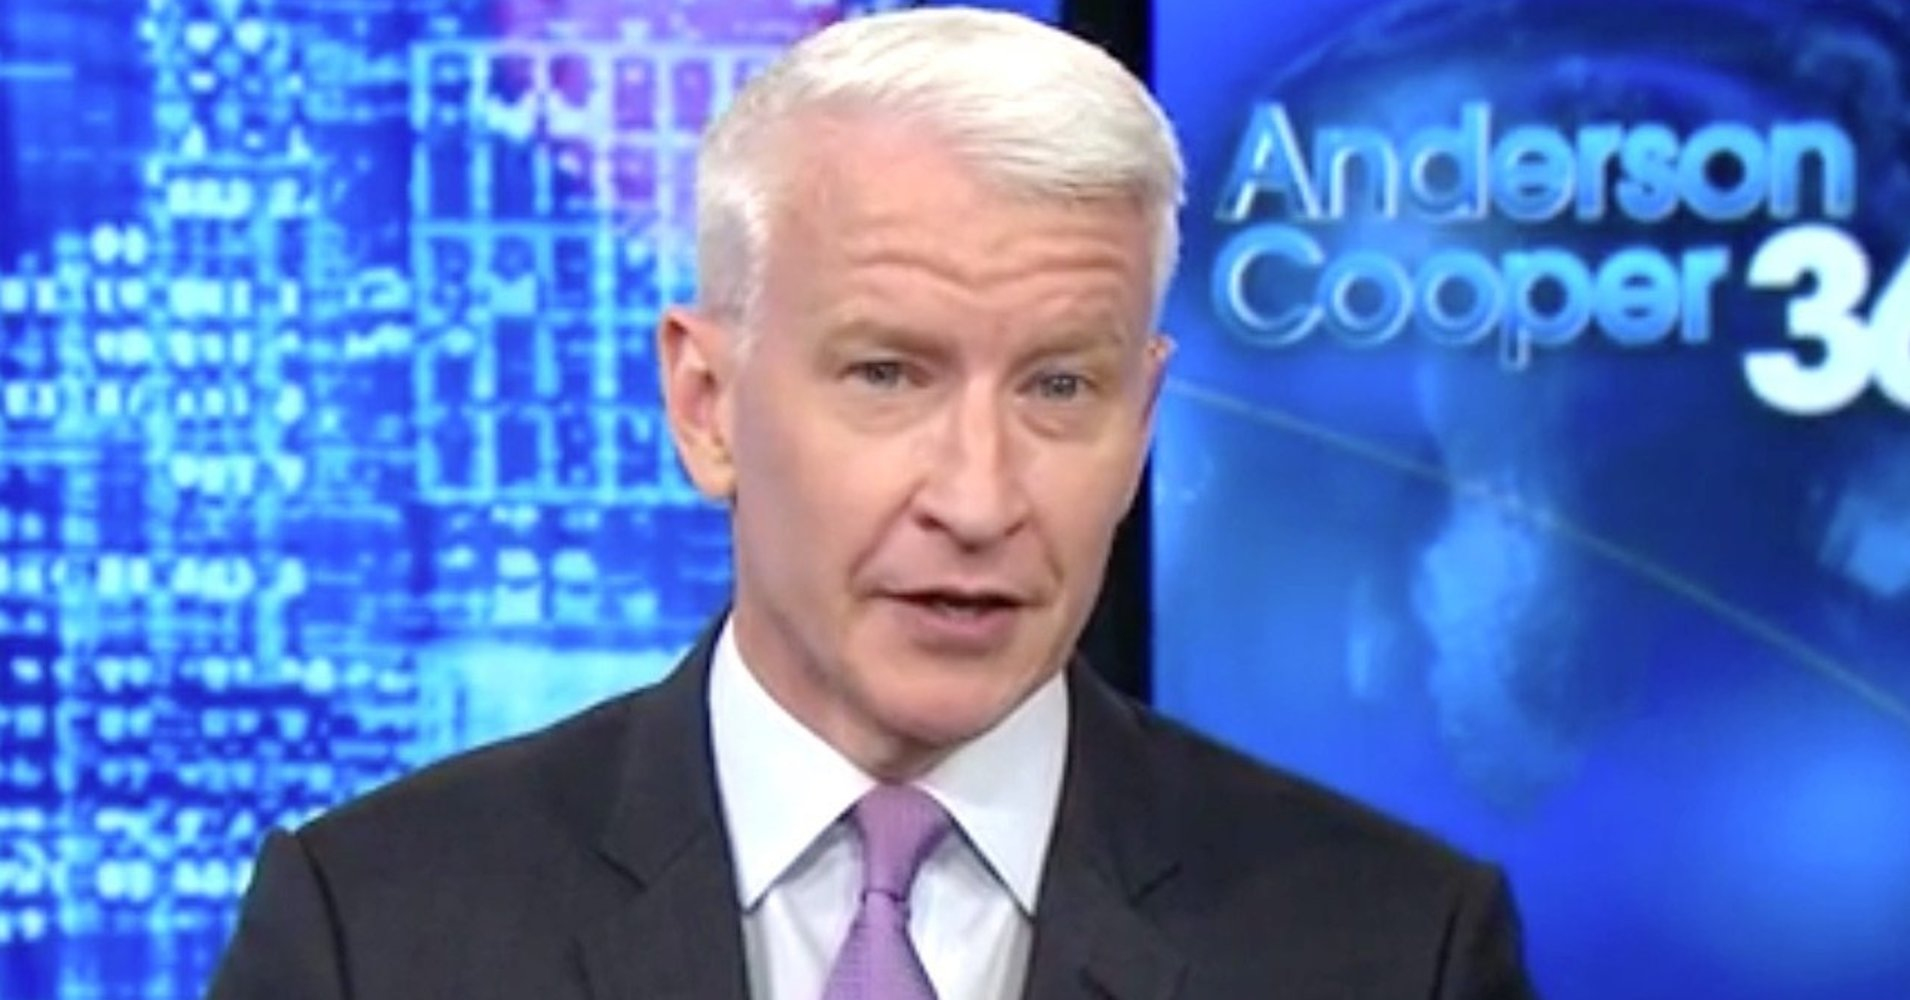 Anderson Cooper has a very blunt message for Sean Spicer https://t.co/KR2b1IRqBZ https://t.co/KJEG8FjeJY